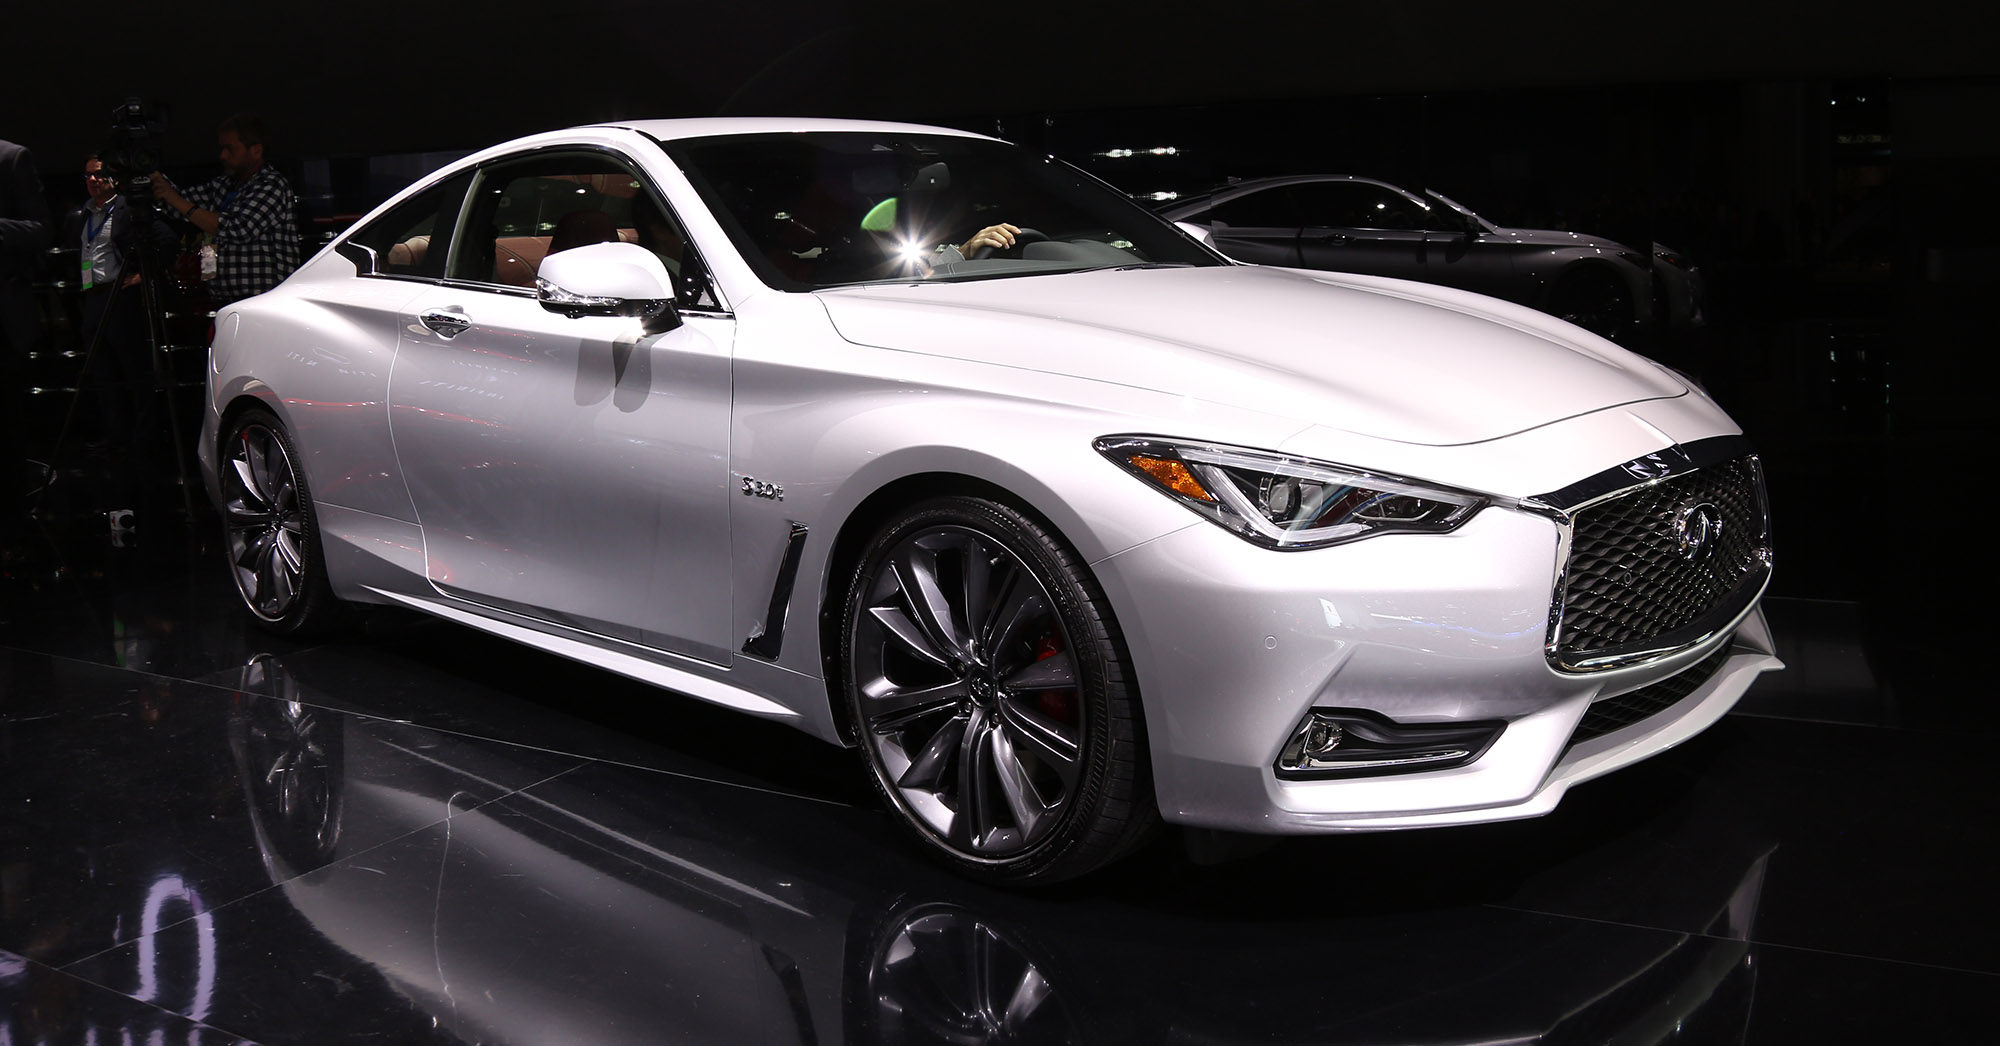 2017 Infiniti Q50 Specs >> 2017 Infiniti Q60 revealed, Australian debut later this year - Photos (1 of 31)